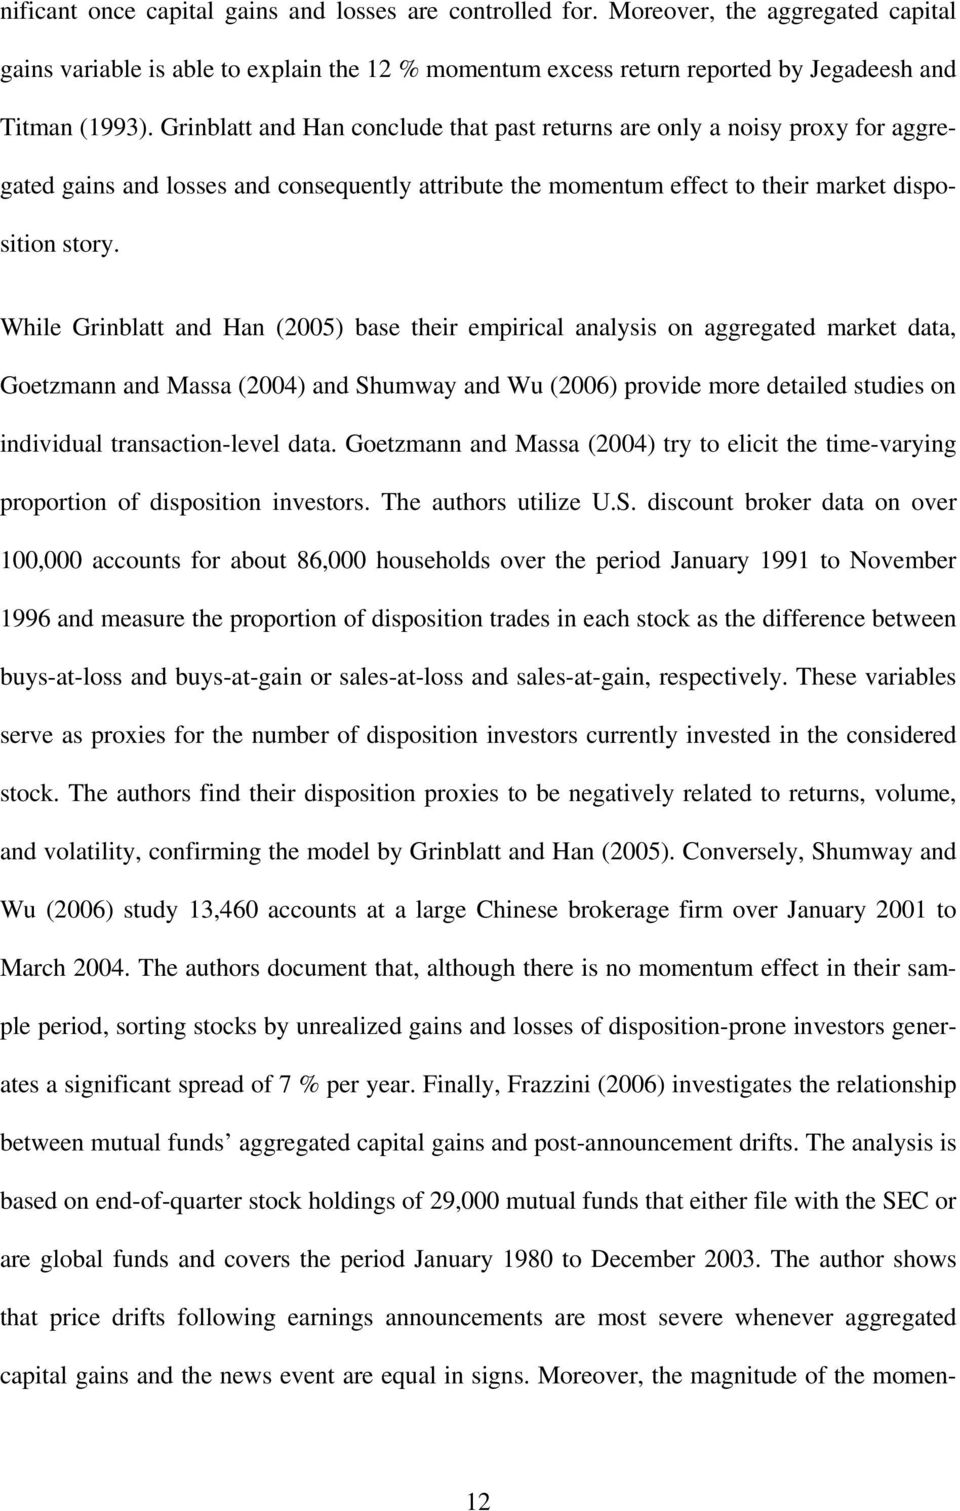 While Grinblatt and Han (2005) base their empirical analysis on aggregated market data, Goetzmann and Massa (2004) and Shumway and Wu (2006) provide more detailed studies on individual